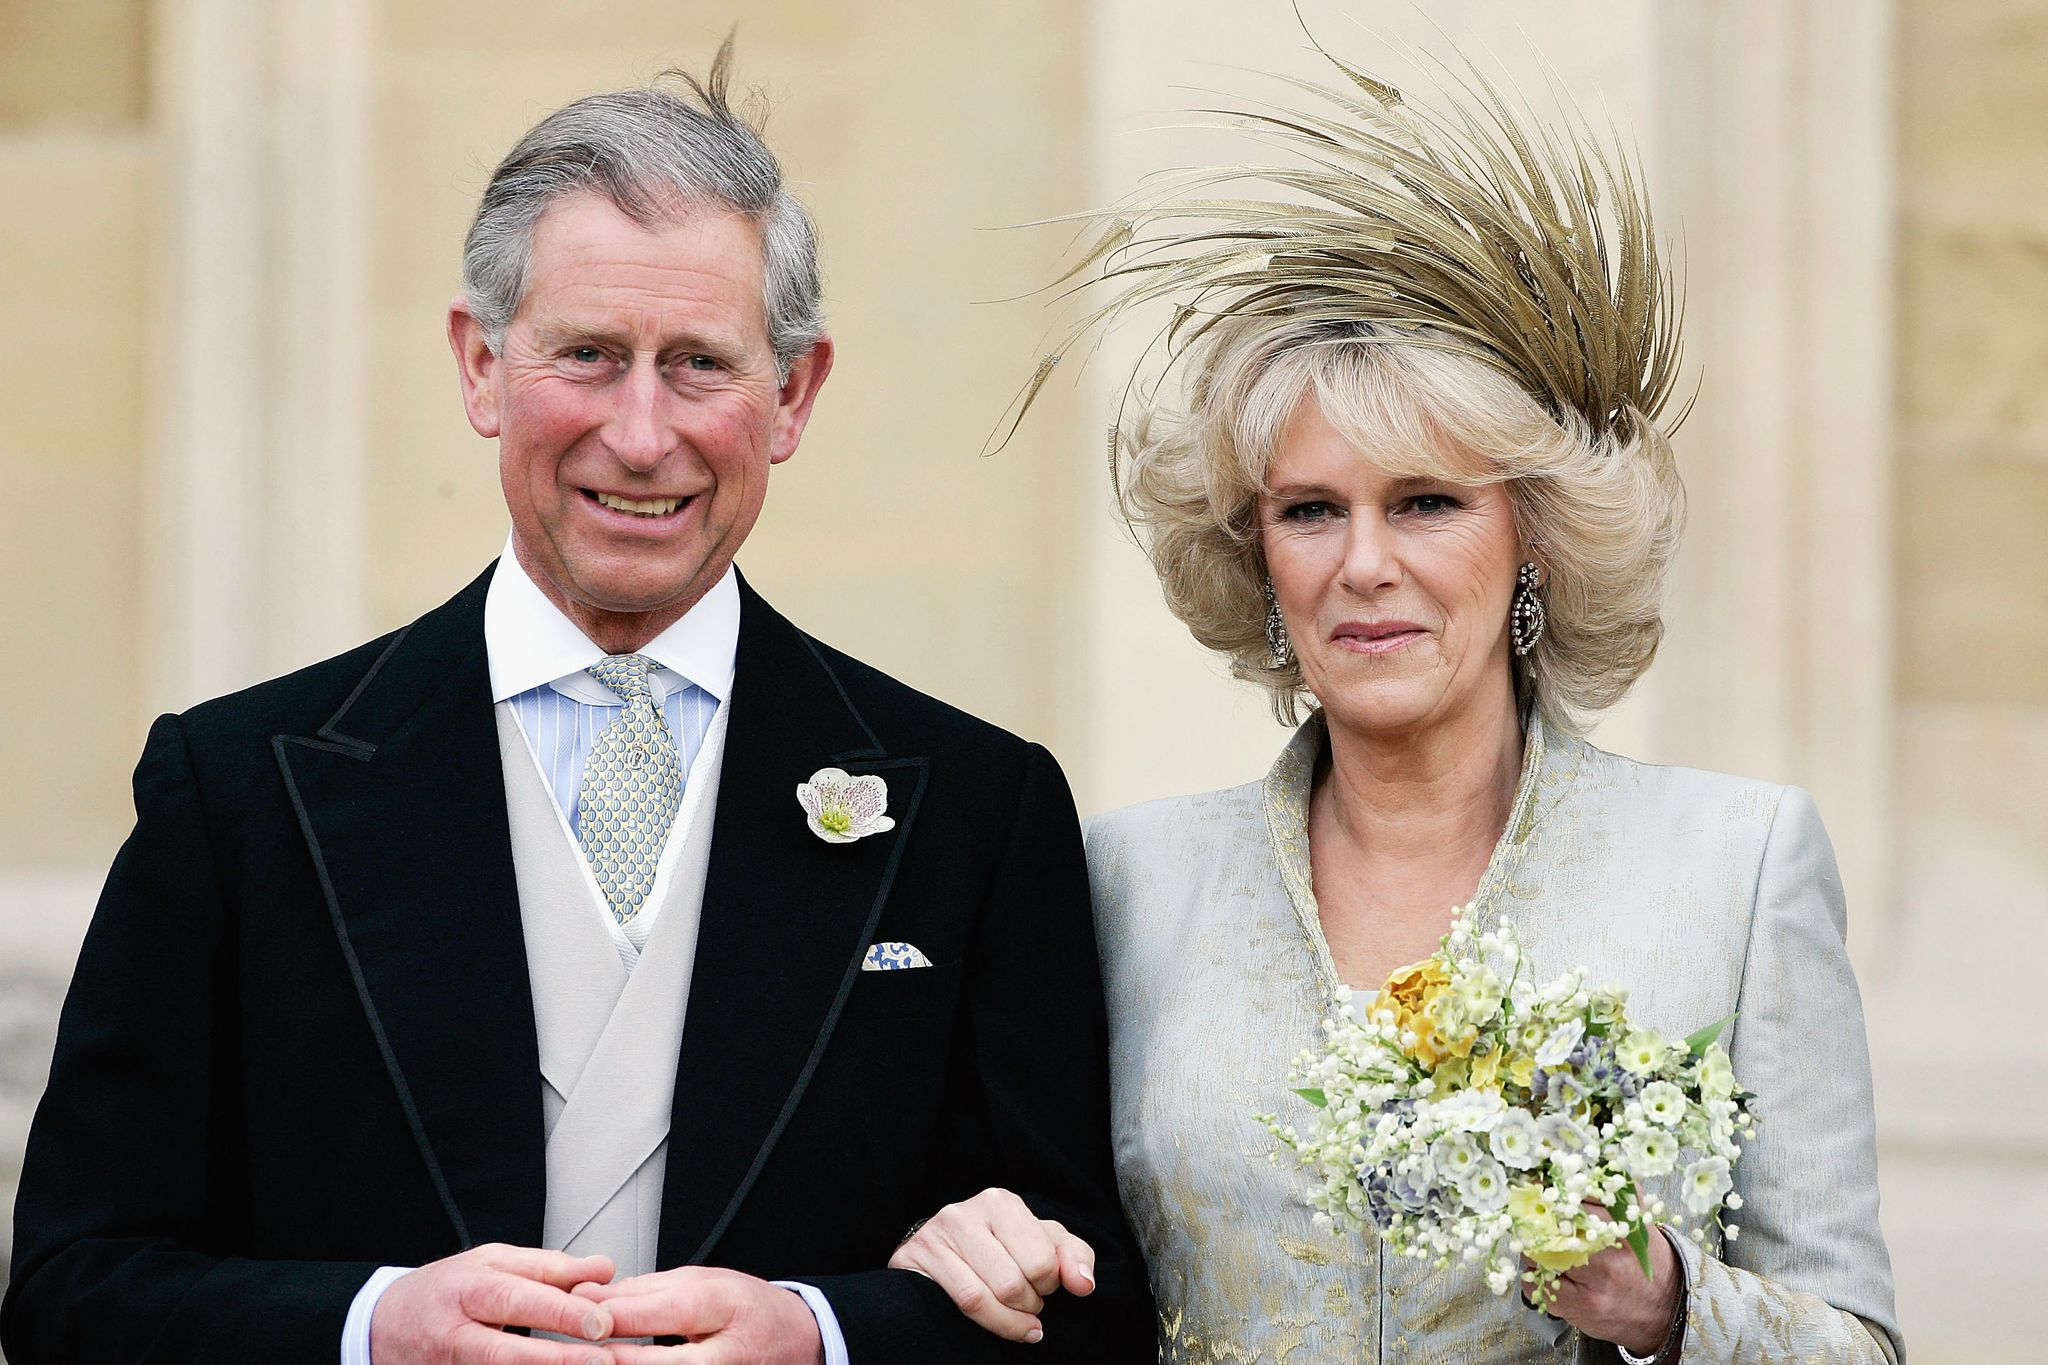 Prince Charles and Camilla Parker-Bowles on their wedding day, 2005| Photo: Getty Images